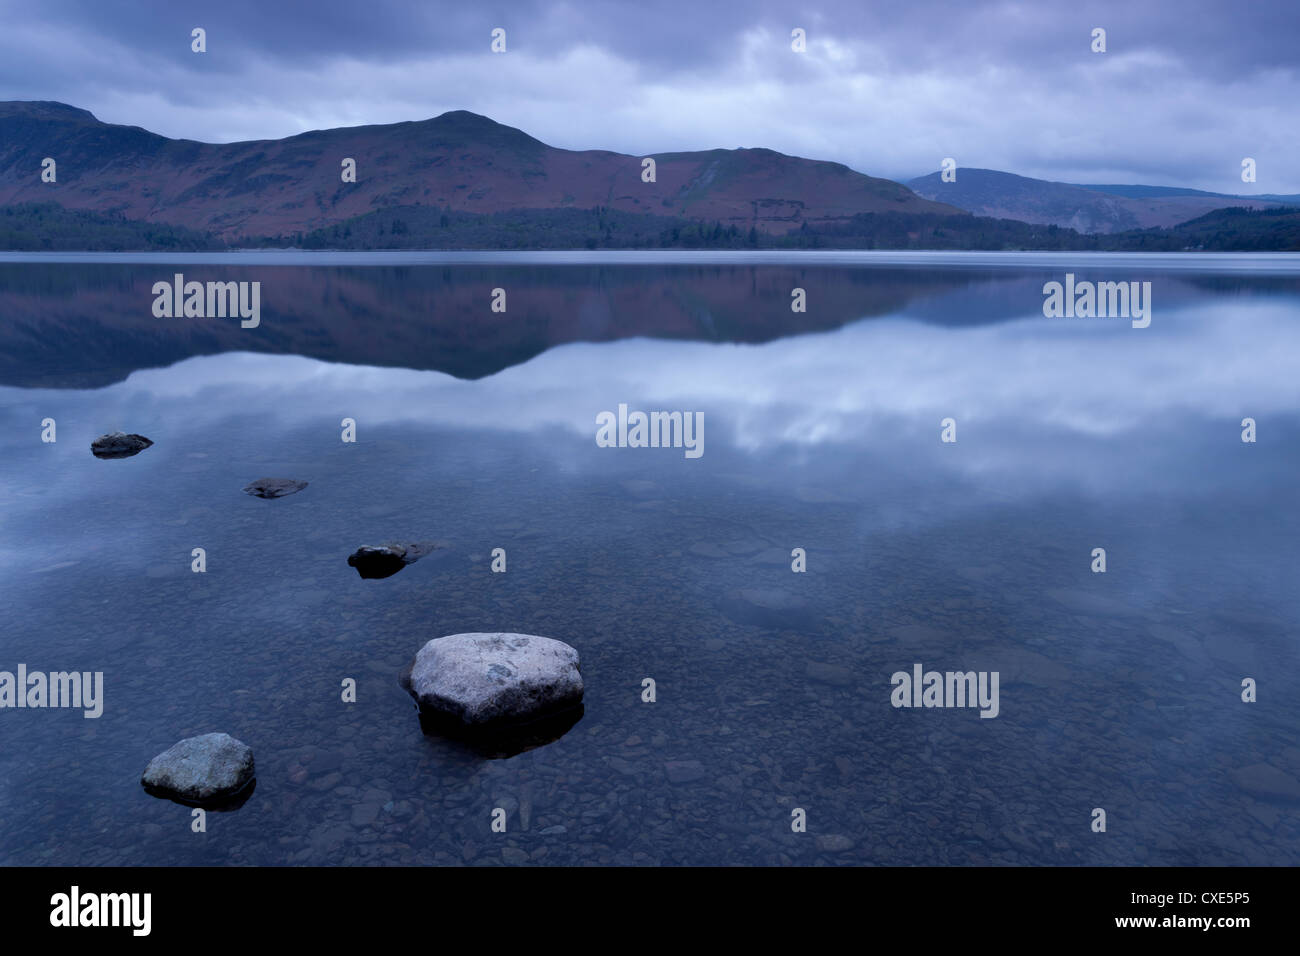 Dawn from the South-East shore of Derwentwater, Keswick, Lake District National Park, Cumbria, England, United Kingdom, - Stock Image